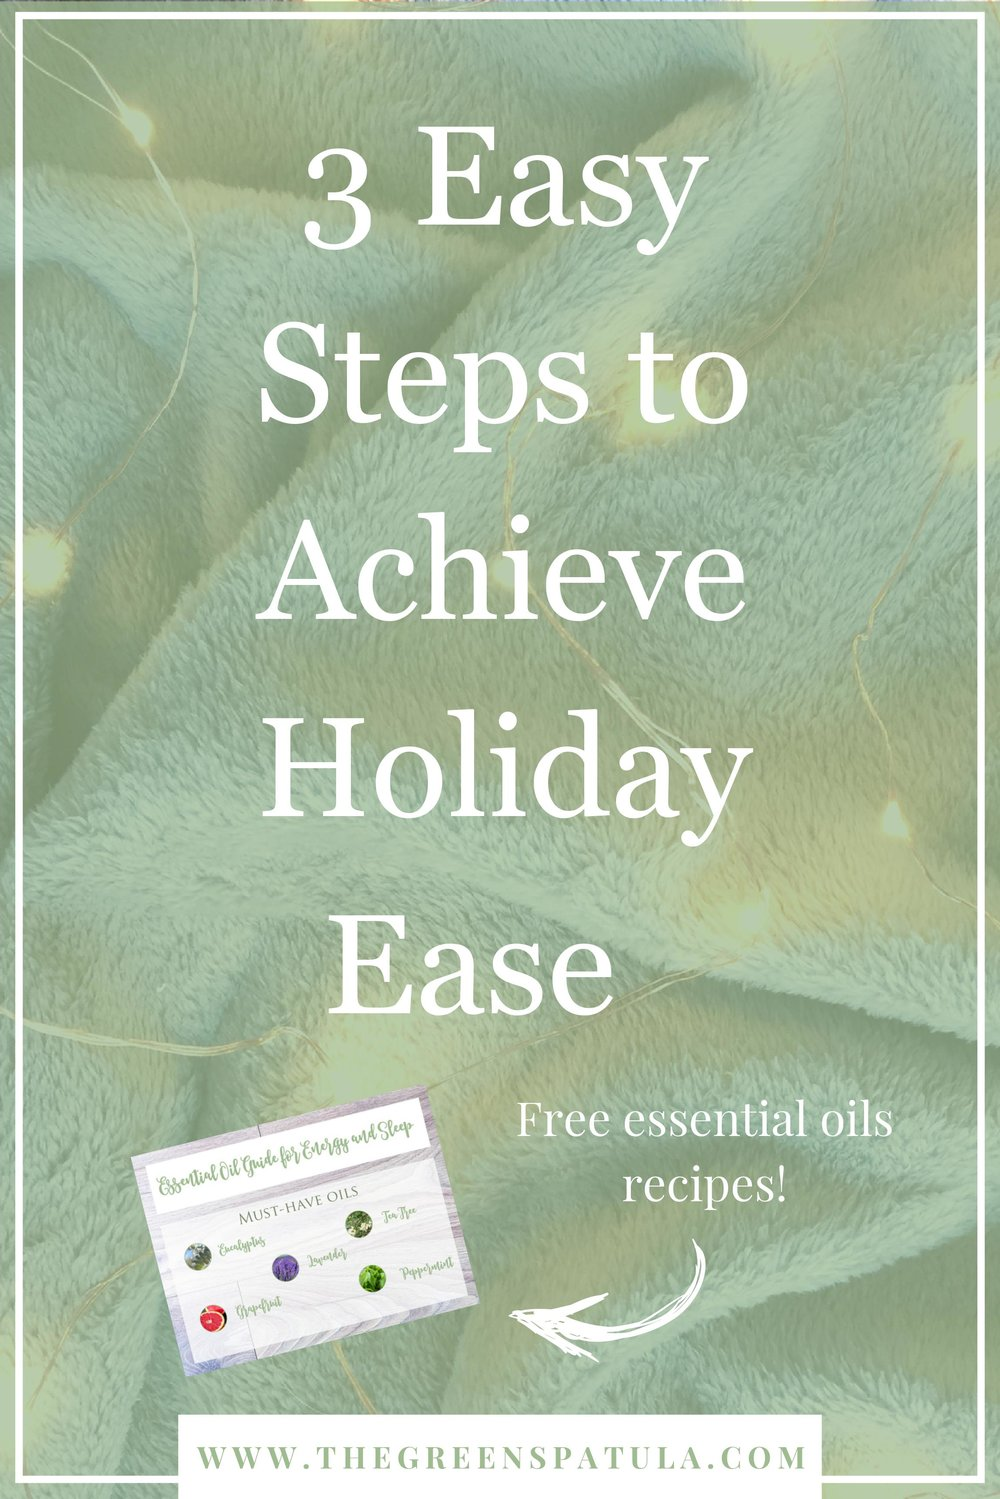 3 easy steps to achieve holiday ease - Let's be real, Christmas is stressful. Whether it's due to financial issues, traveling, family disputes, or staying on track with your health goals, the holidays can test anyone's patience and sanity. To help you de-stress and calm your nerves, I have created a list of 3 simple steps to help you out this holiday season. #stressfree #christmas #essentialoils #youngliving #managestress #holiday